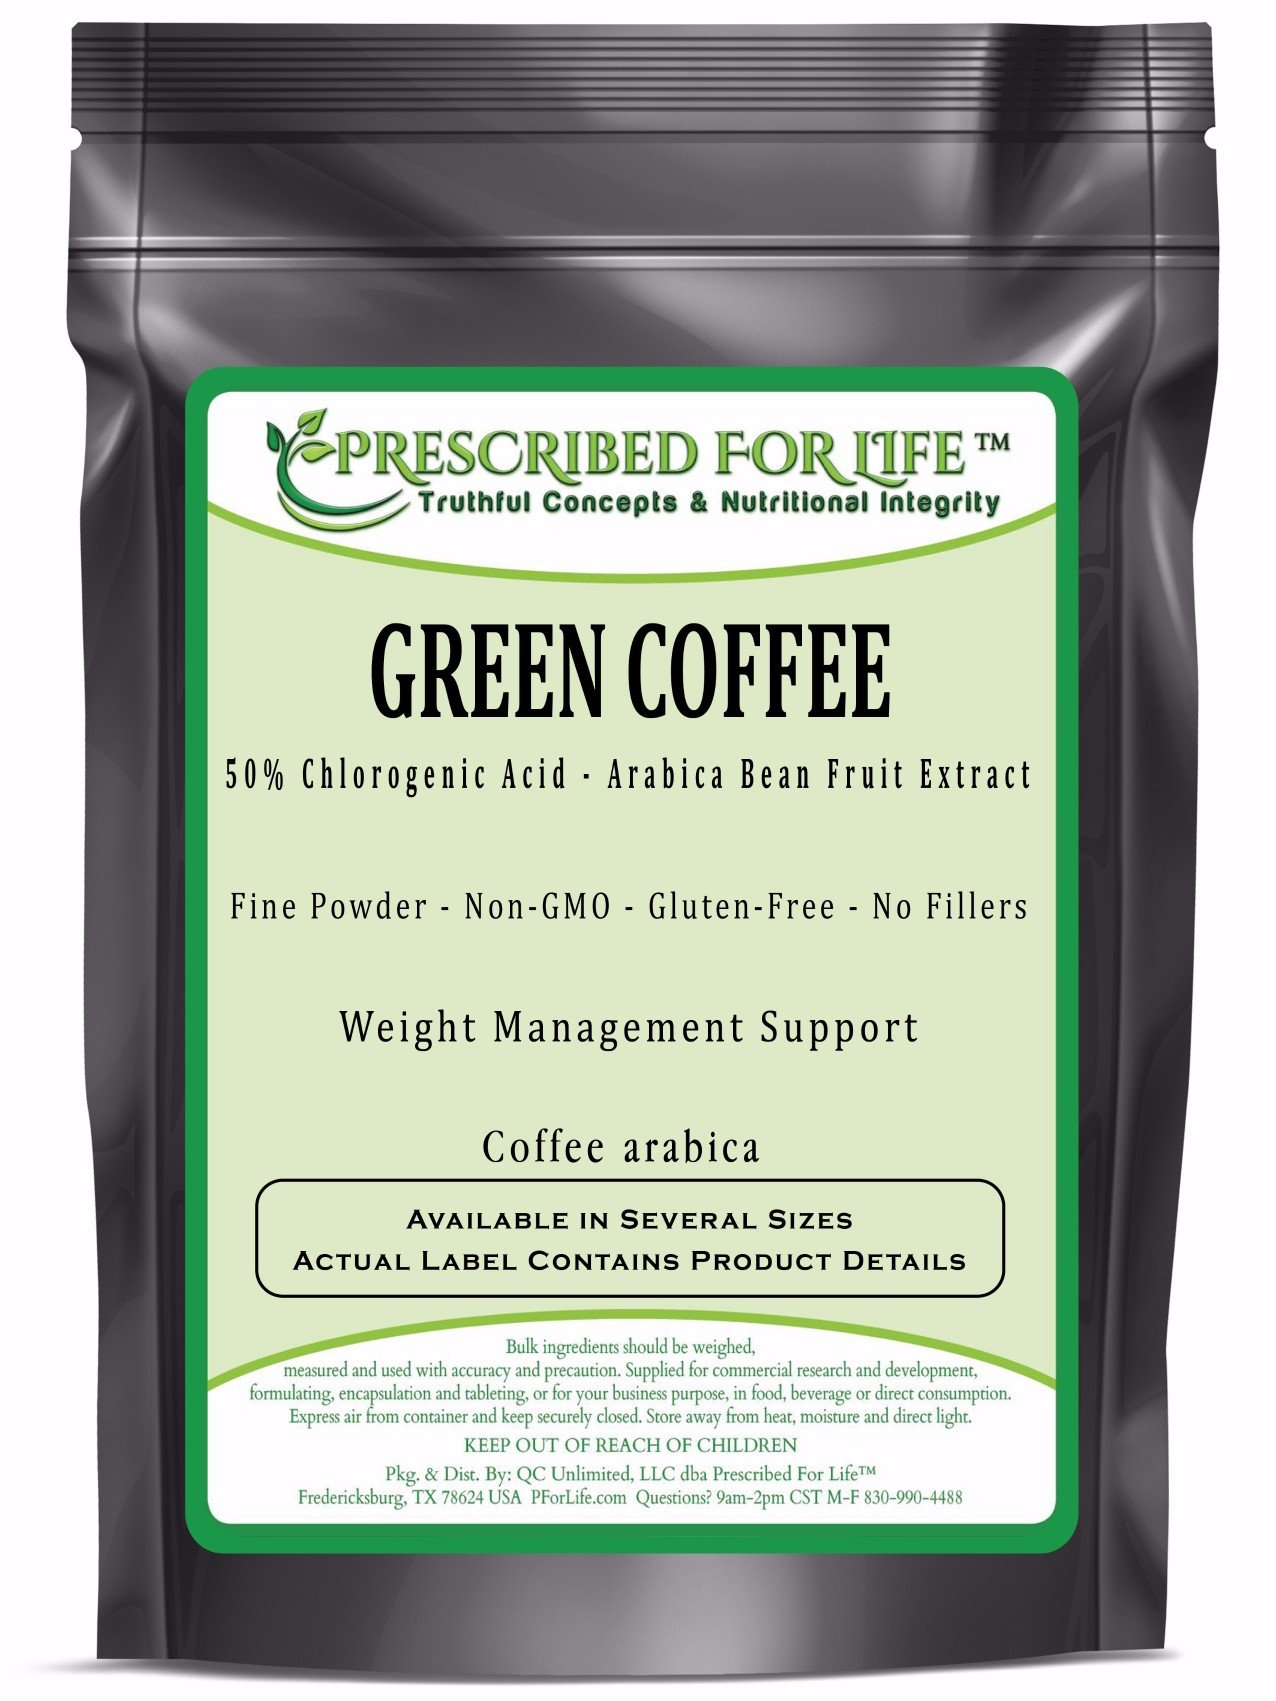 Green Coffee - 50% Chlorogenic Acid - Arabica Bean Fruit Extract Powder (Coffea Arabica), 1 kg by Prescribed For Life